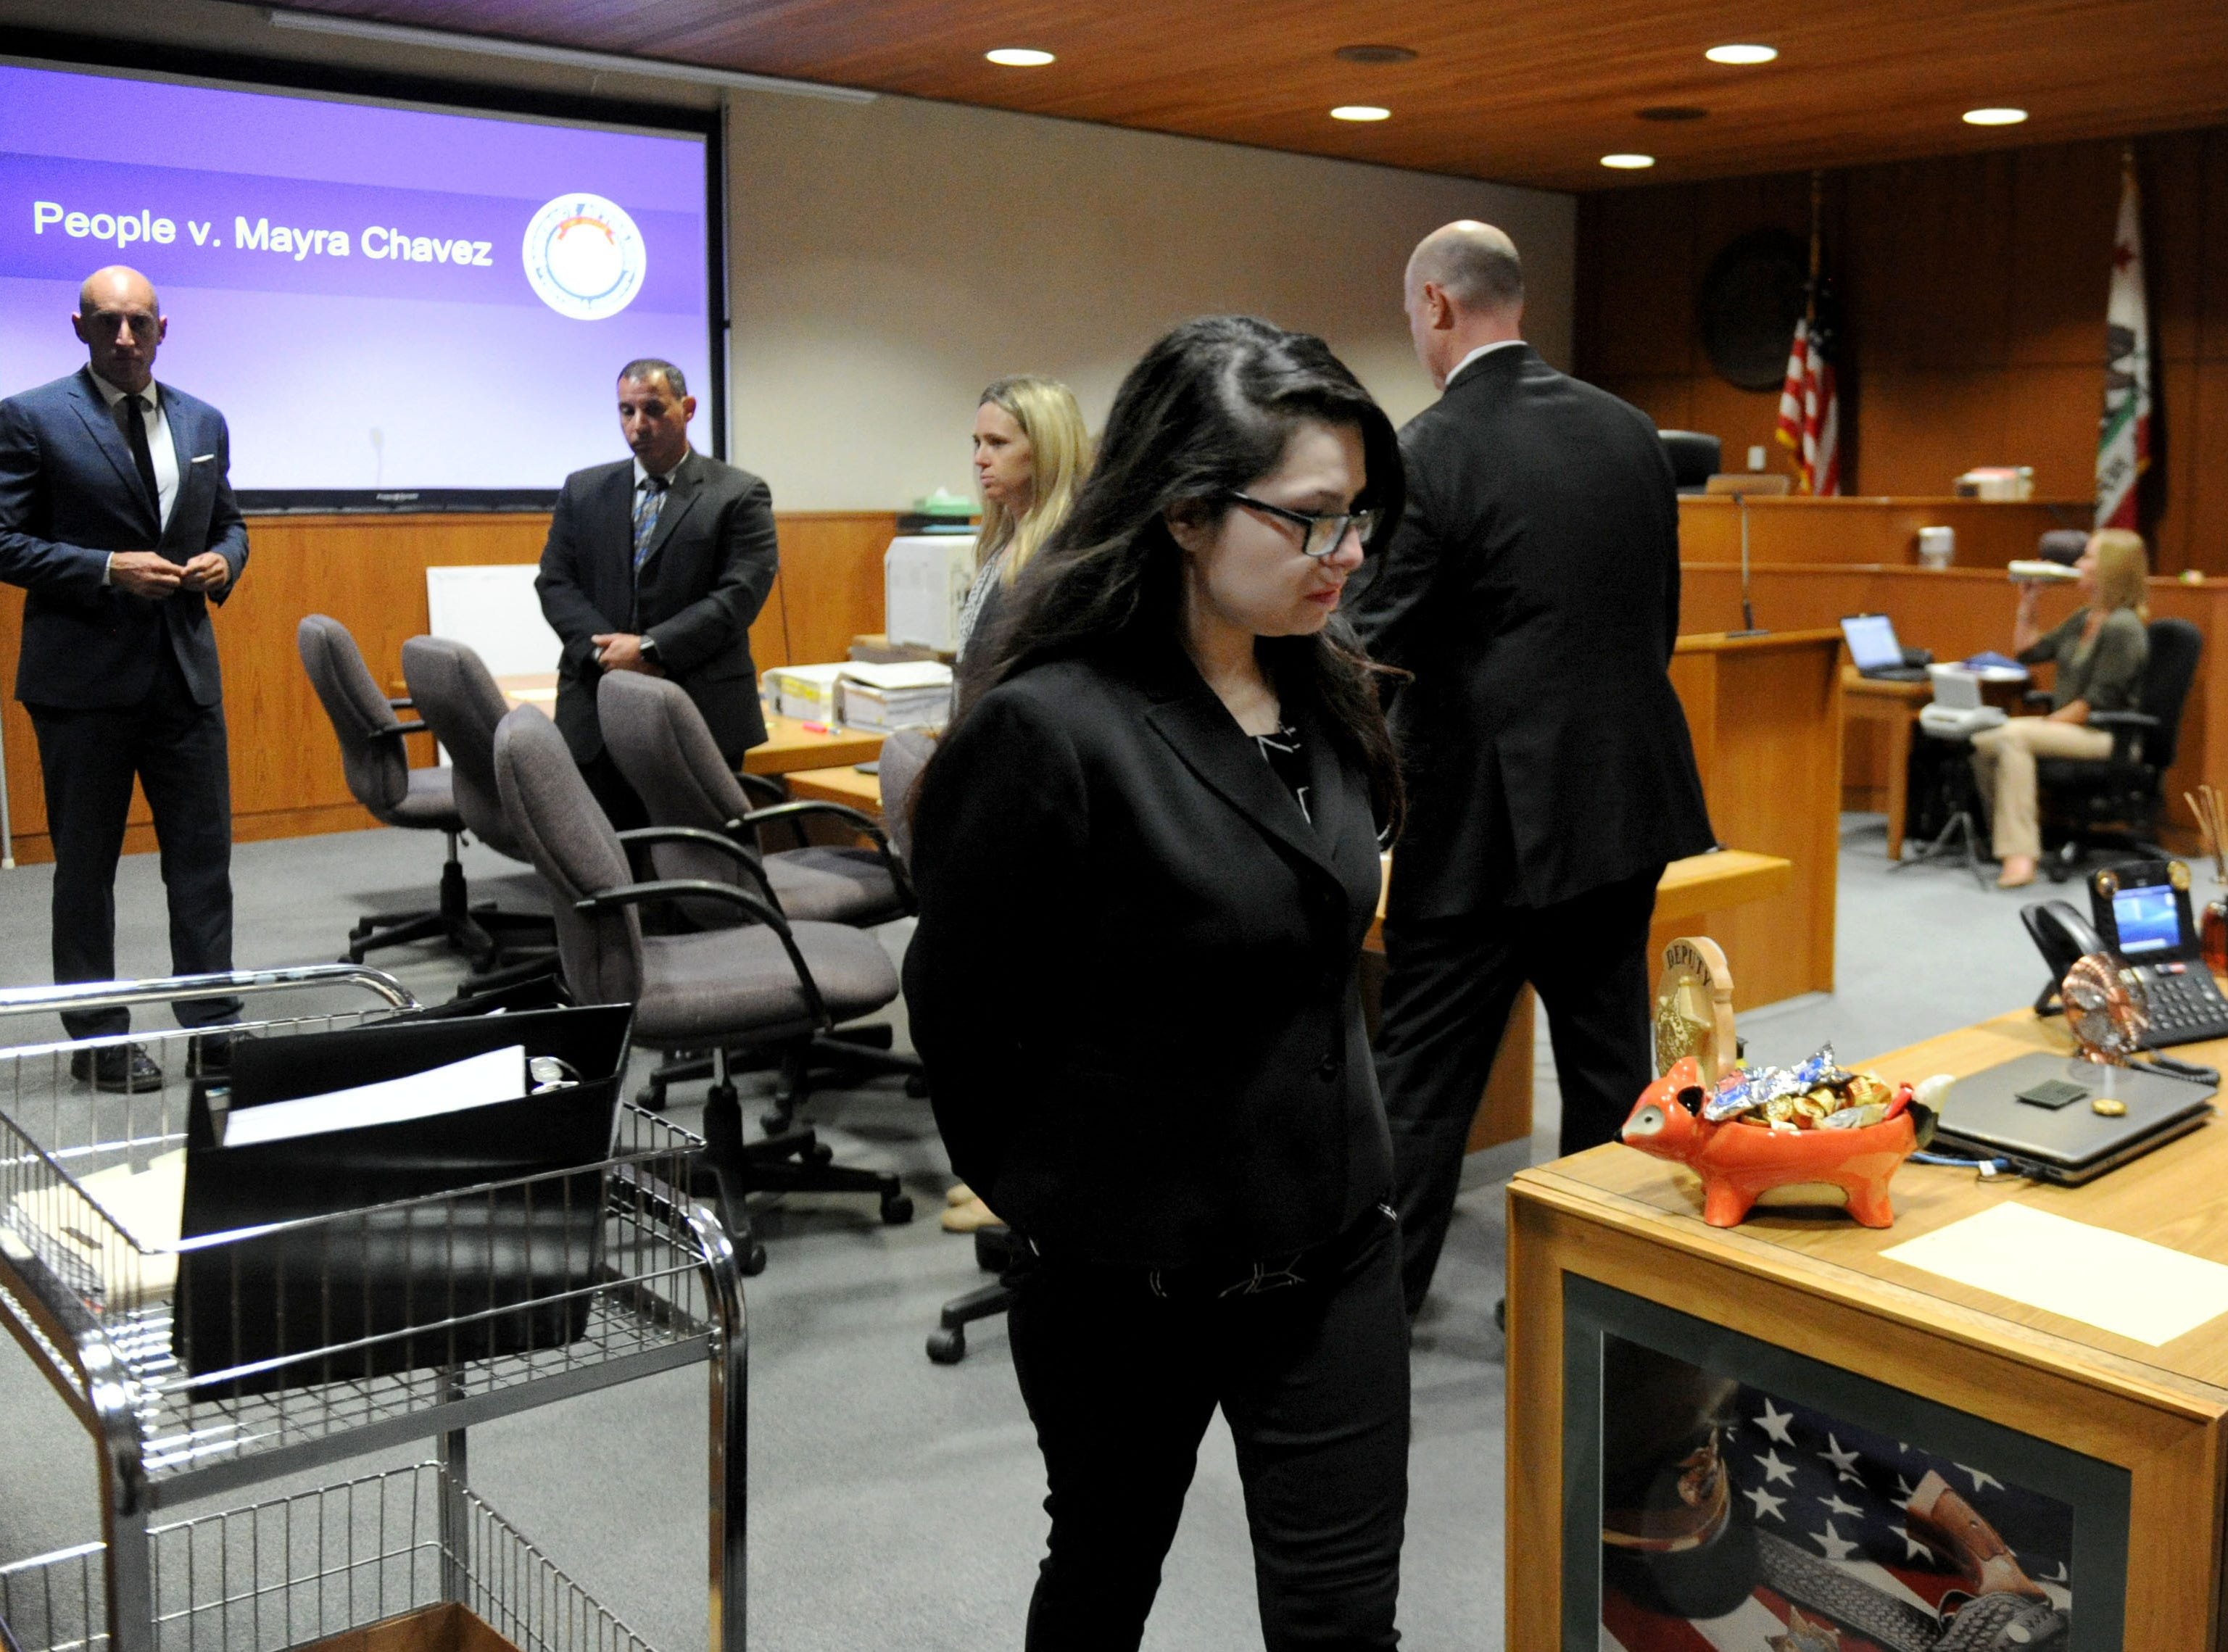 Mayra Chavez, 27, returns to her containment cell after the opening statements Tuesday at Ventura County Superior Court. She is accused of killing her 3-year-old daughter Kimberly Lopez who authorities believe to be dead somewhere in Mexico.